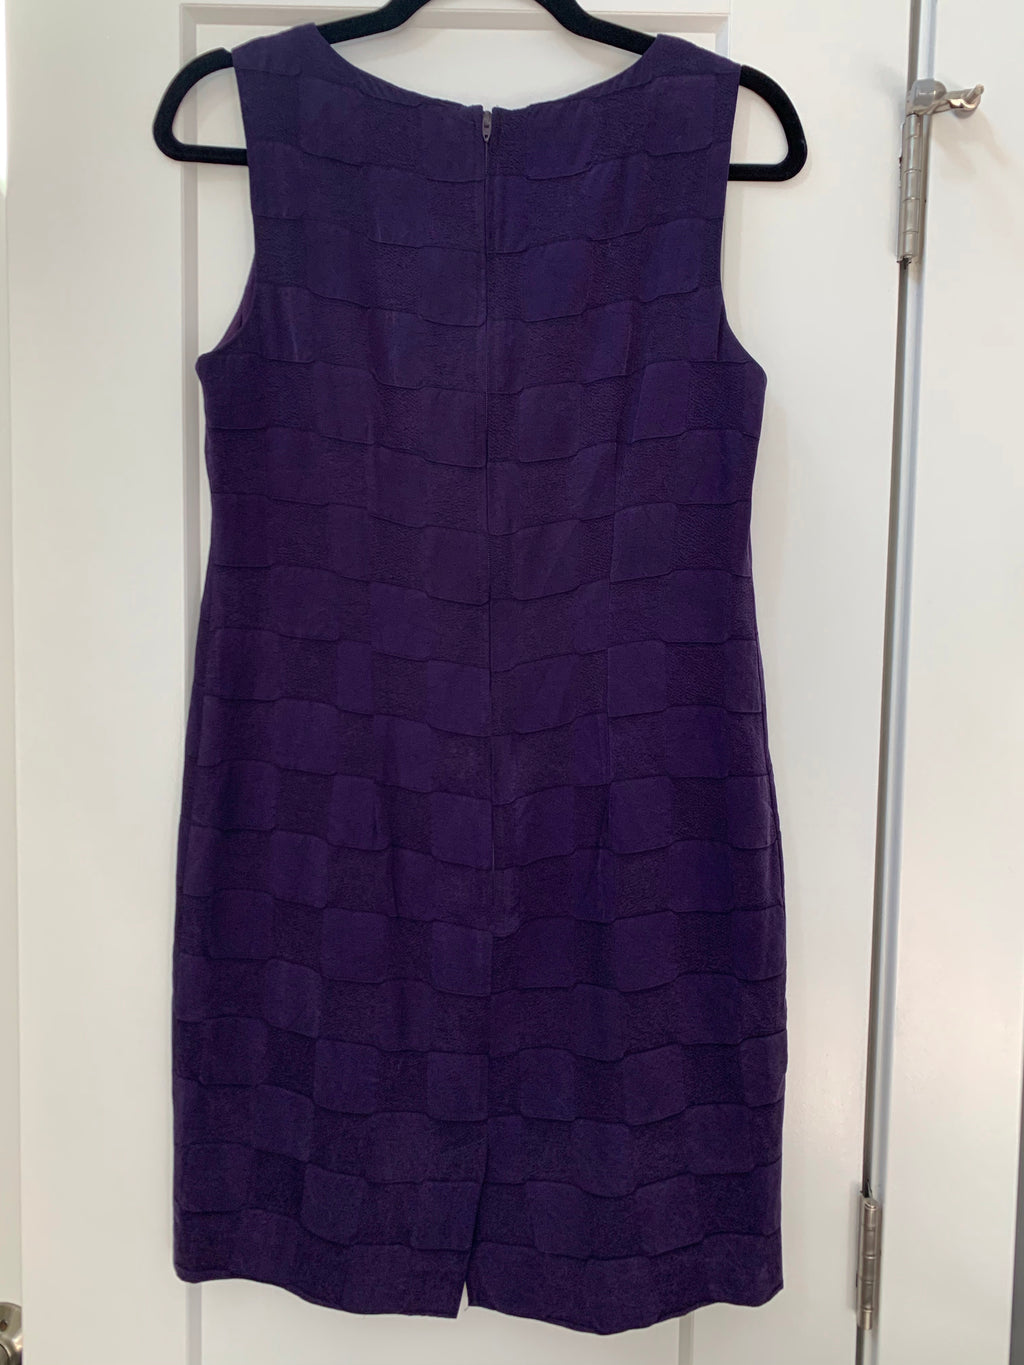 Vintage 60's Mod Violet Shift Dress